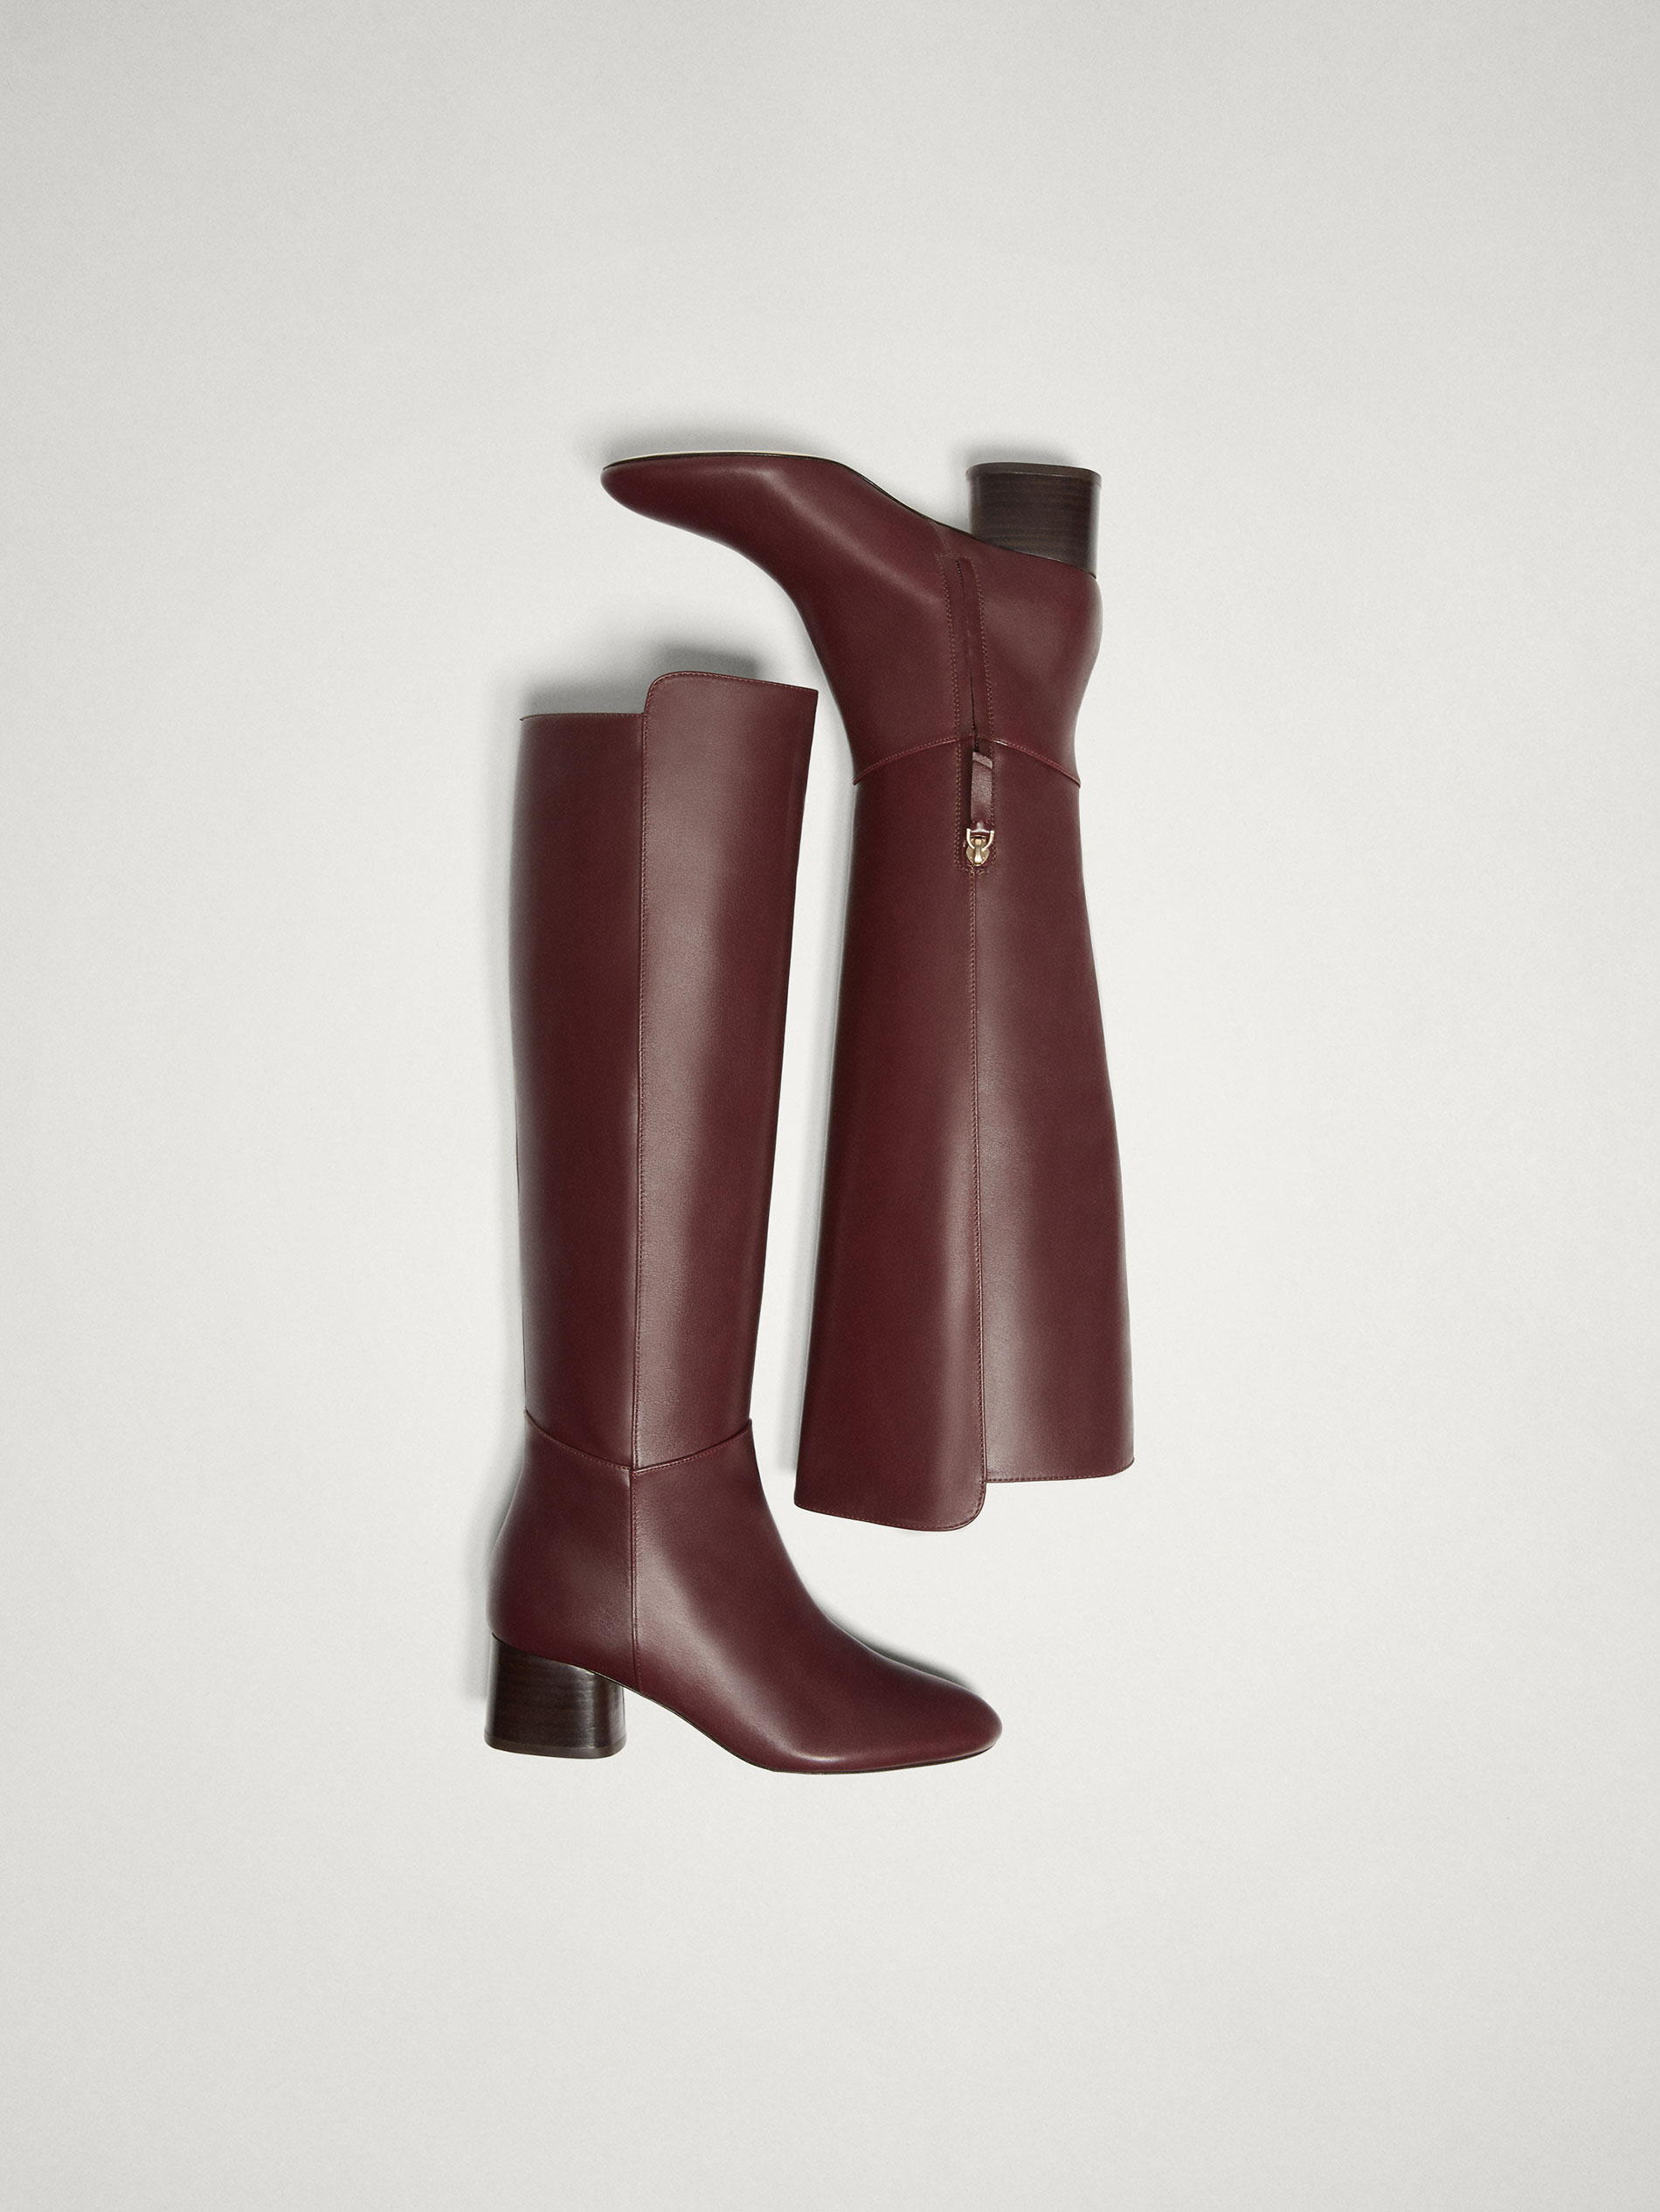 Massimo Dutti BURGUNDY NAPPA LEATHER BOOTS at £179   love the brands 3ce8d91ad63